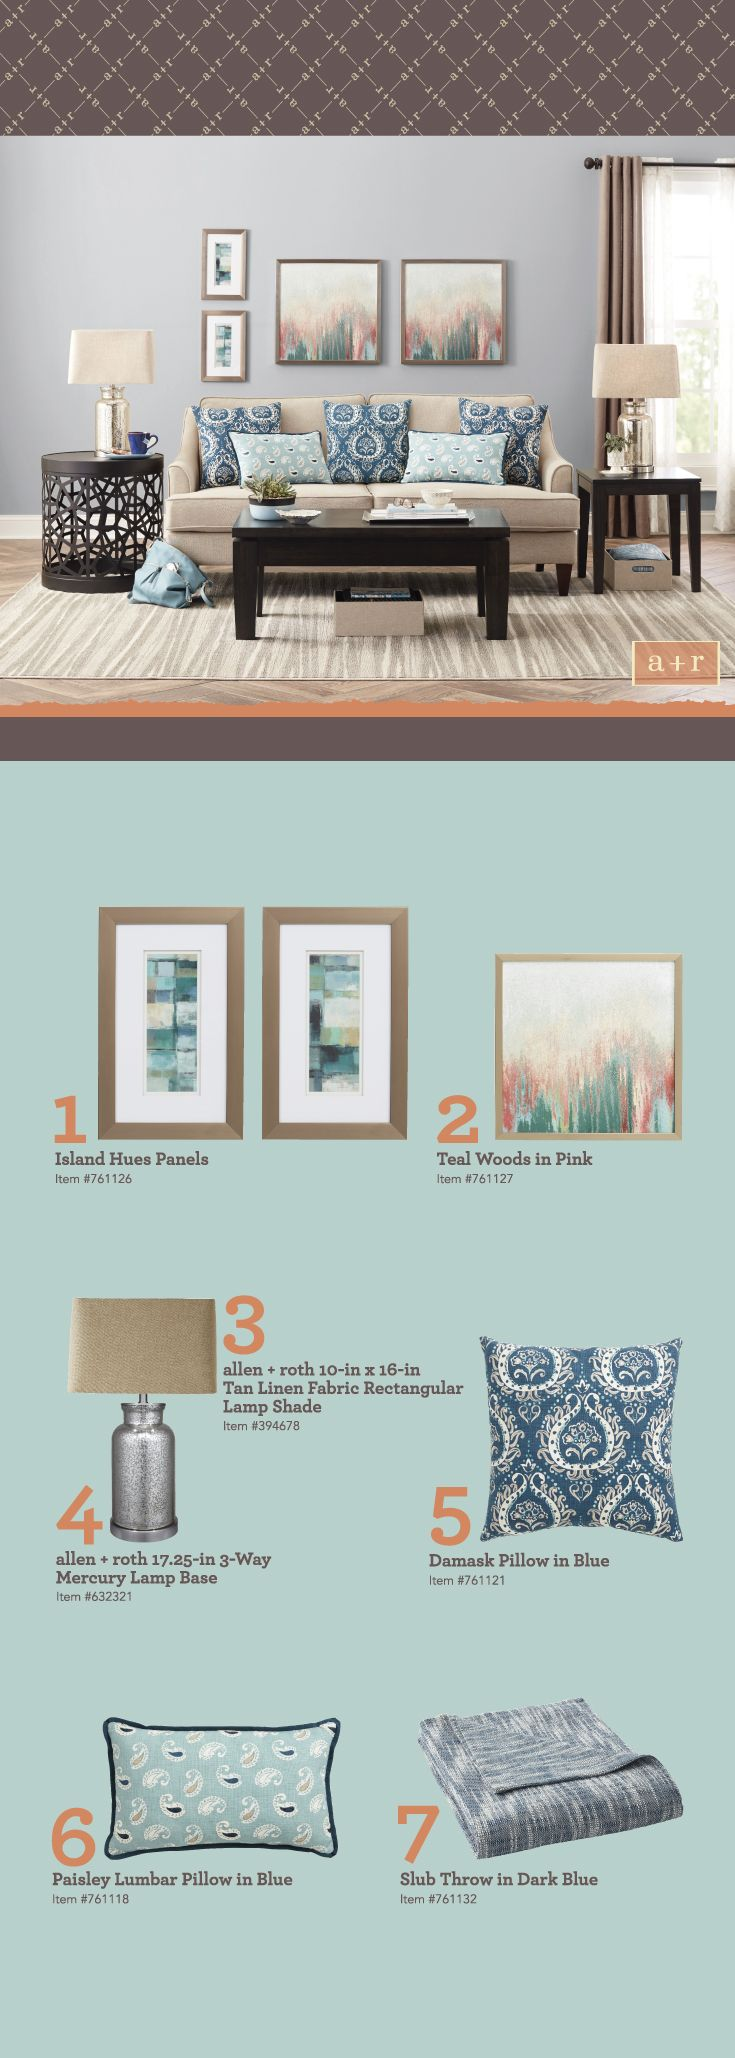 Home Decor Styles Use Accessories To Inject Color Into Your Room This Collection From Allen Roth Mixes